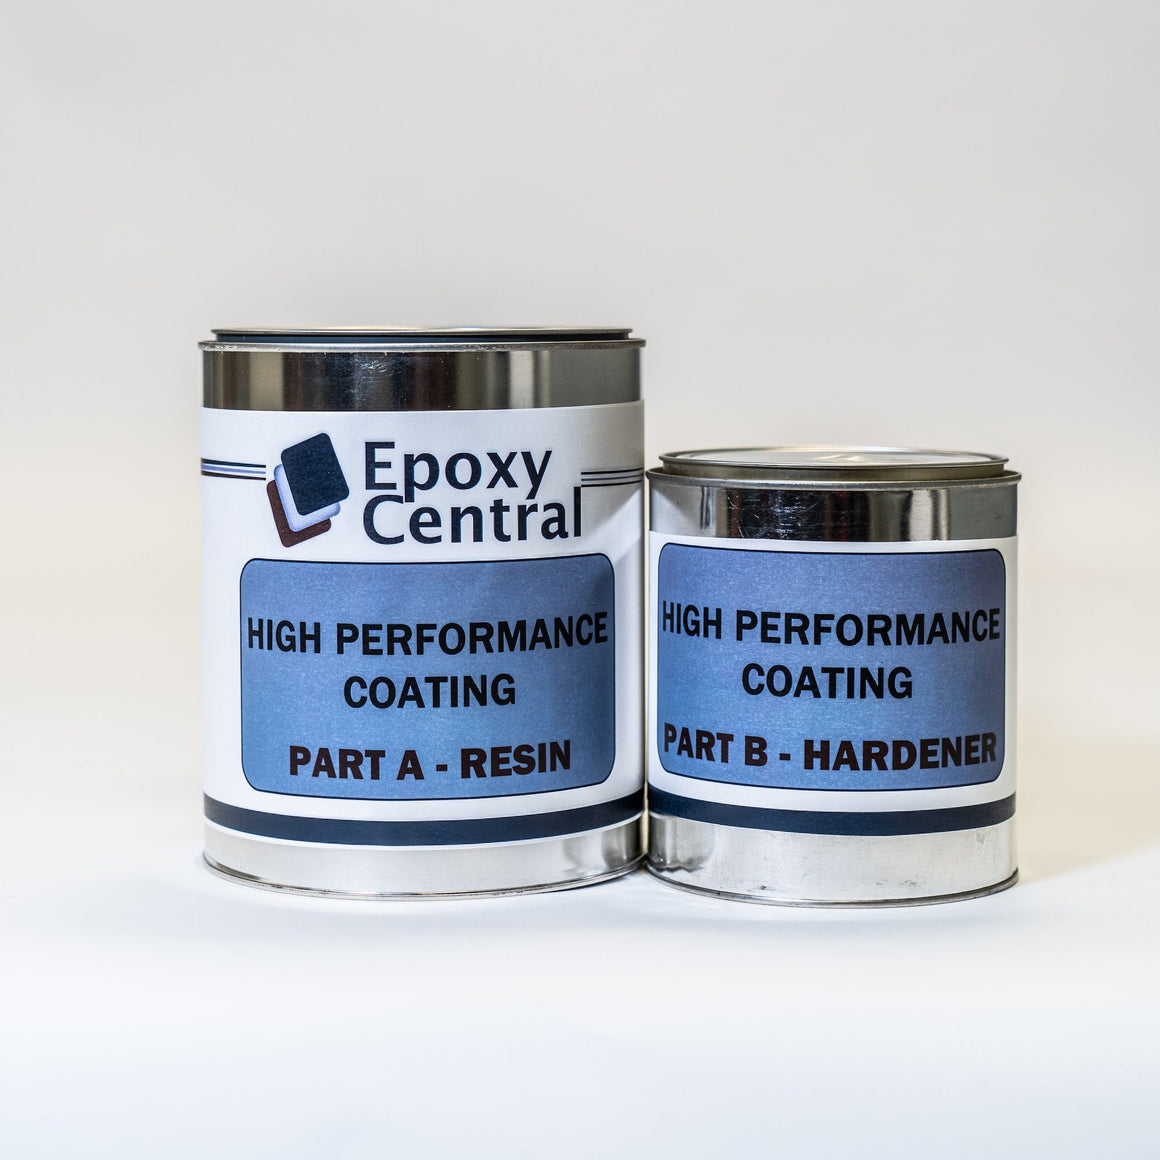 Base Coat - 93% Solids Medium Build Epoxy Coating